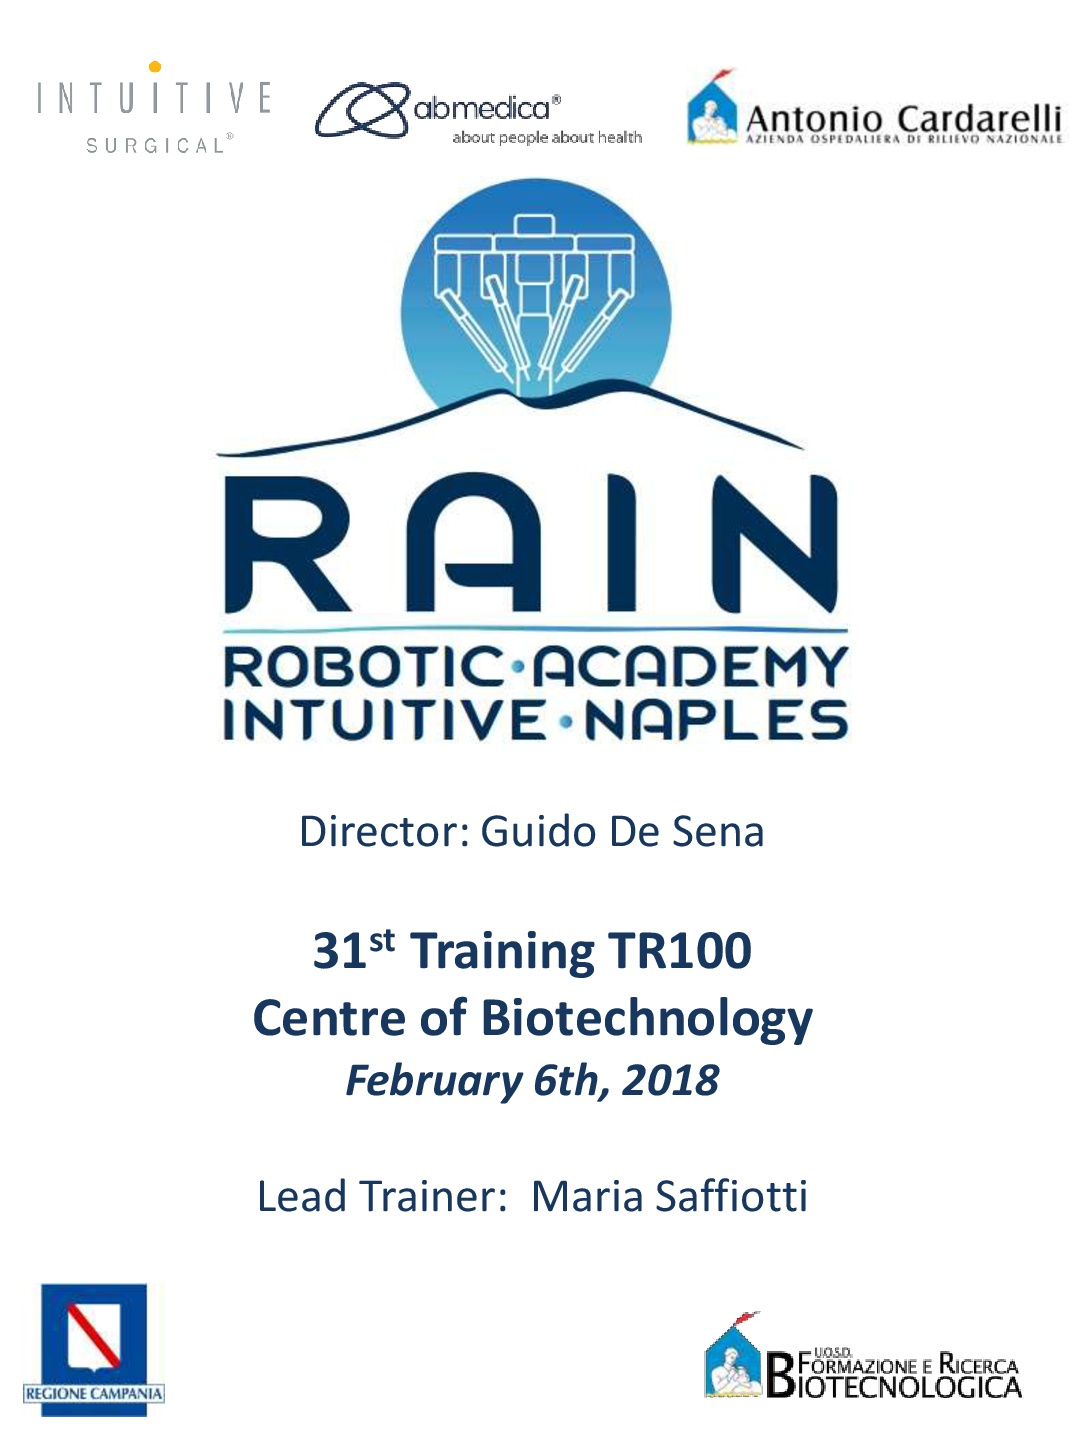 RAIN - Robotic Academy Intuitive Naples - 31st Training TR100